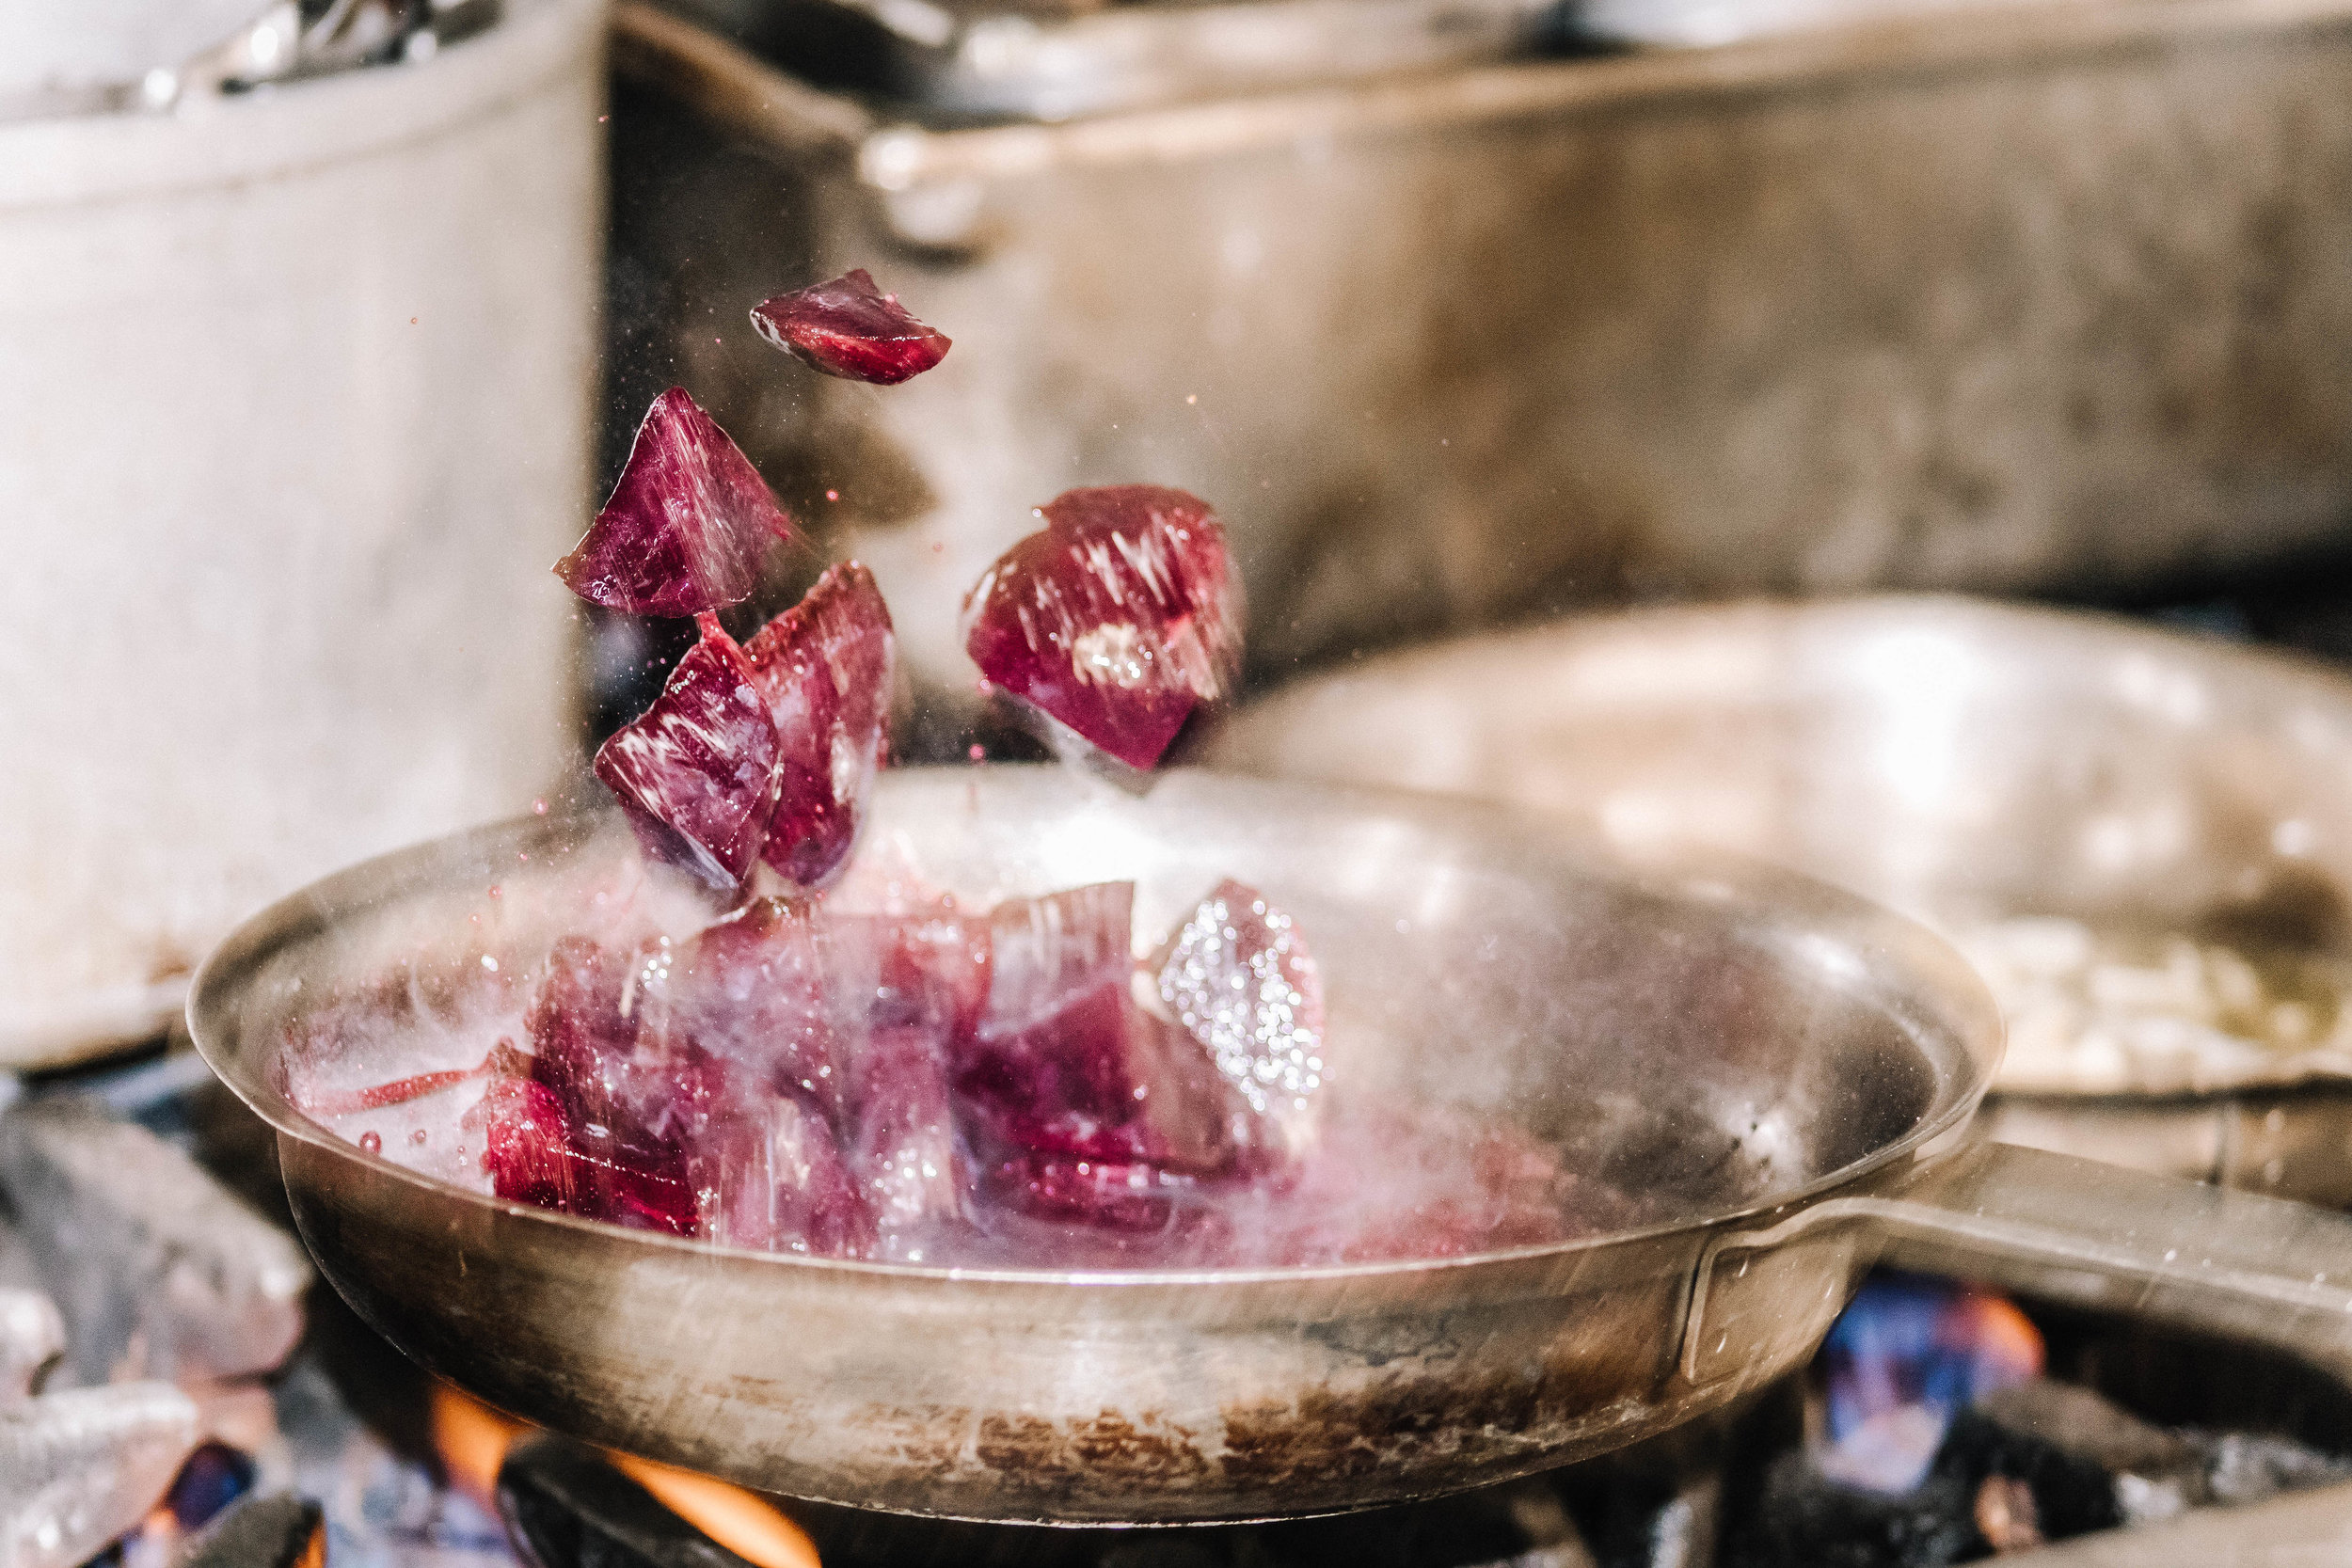 Sizzling beets